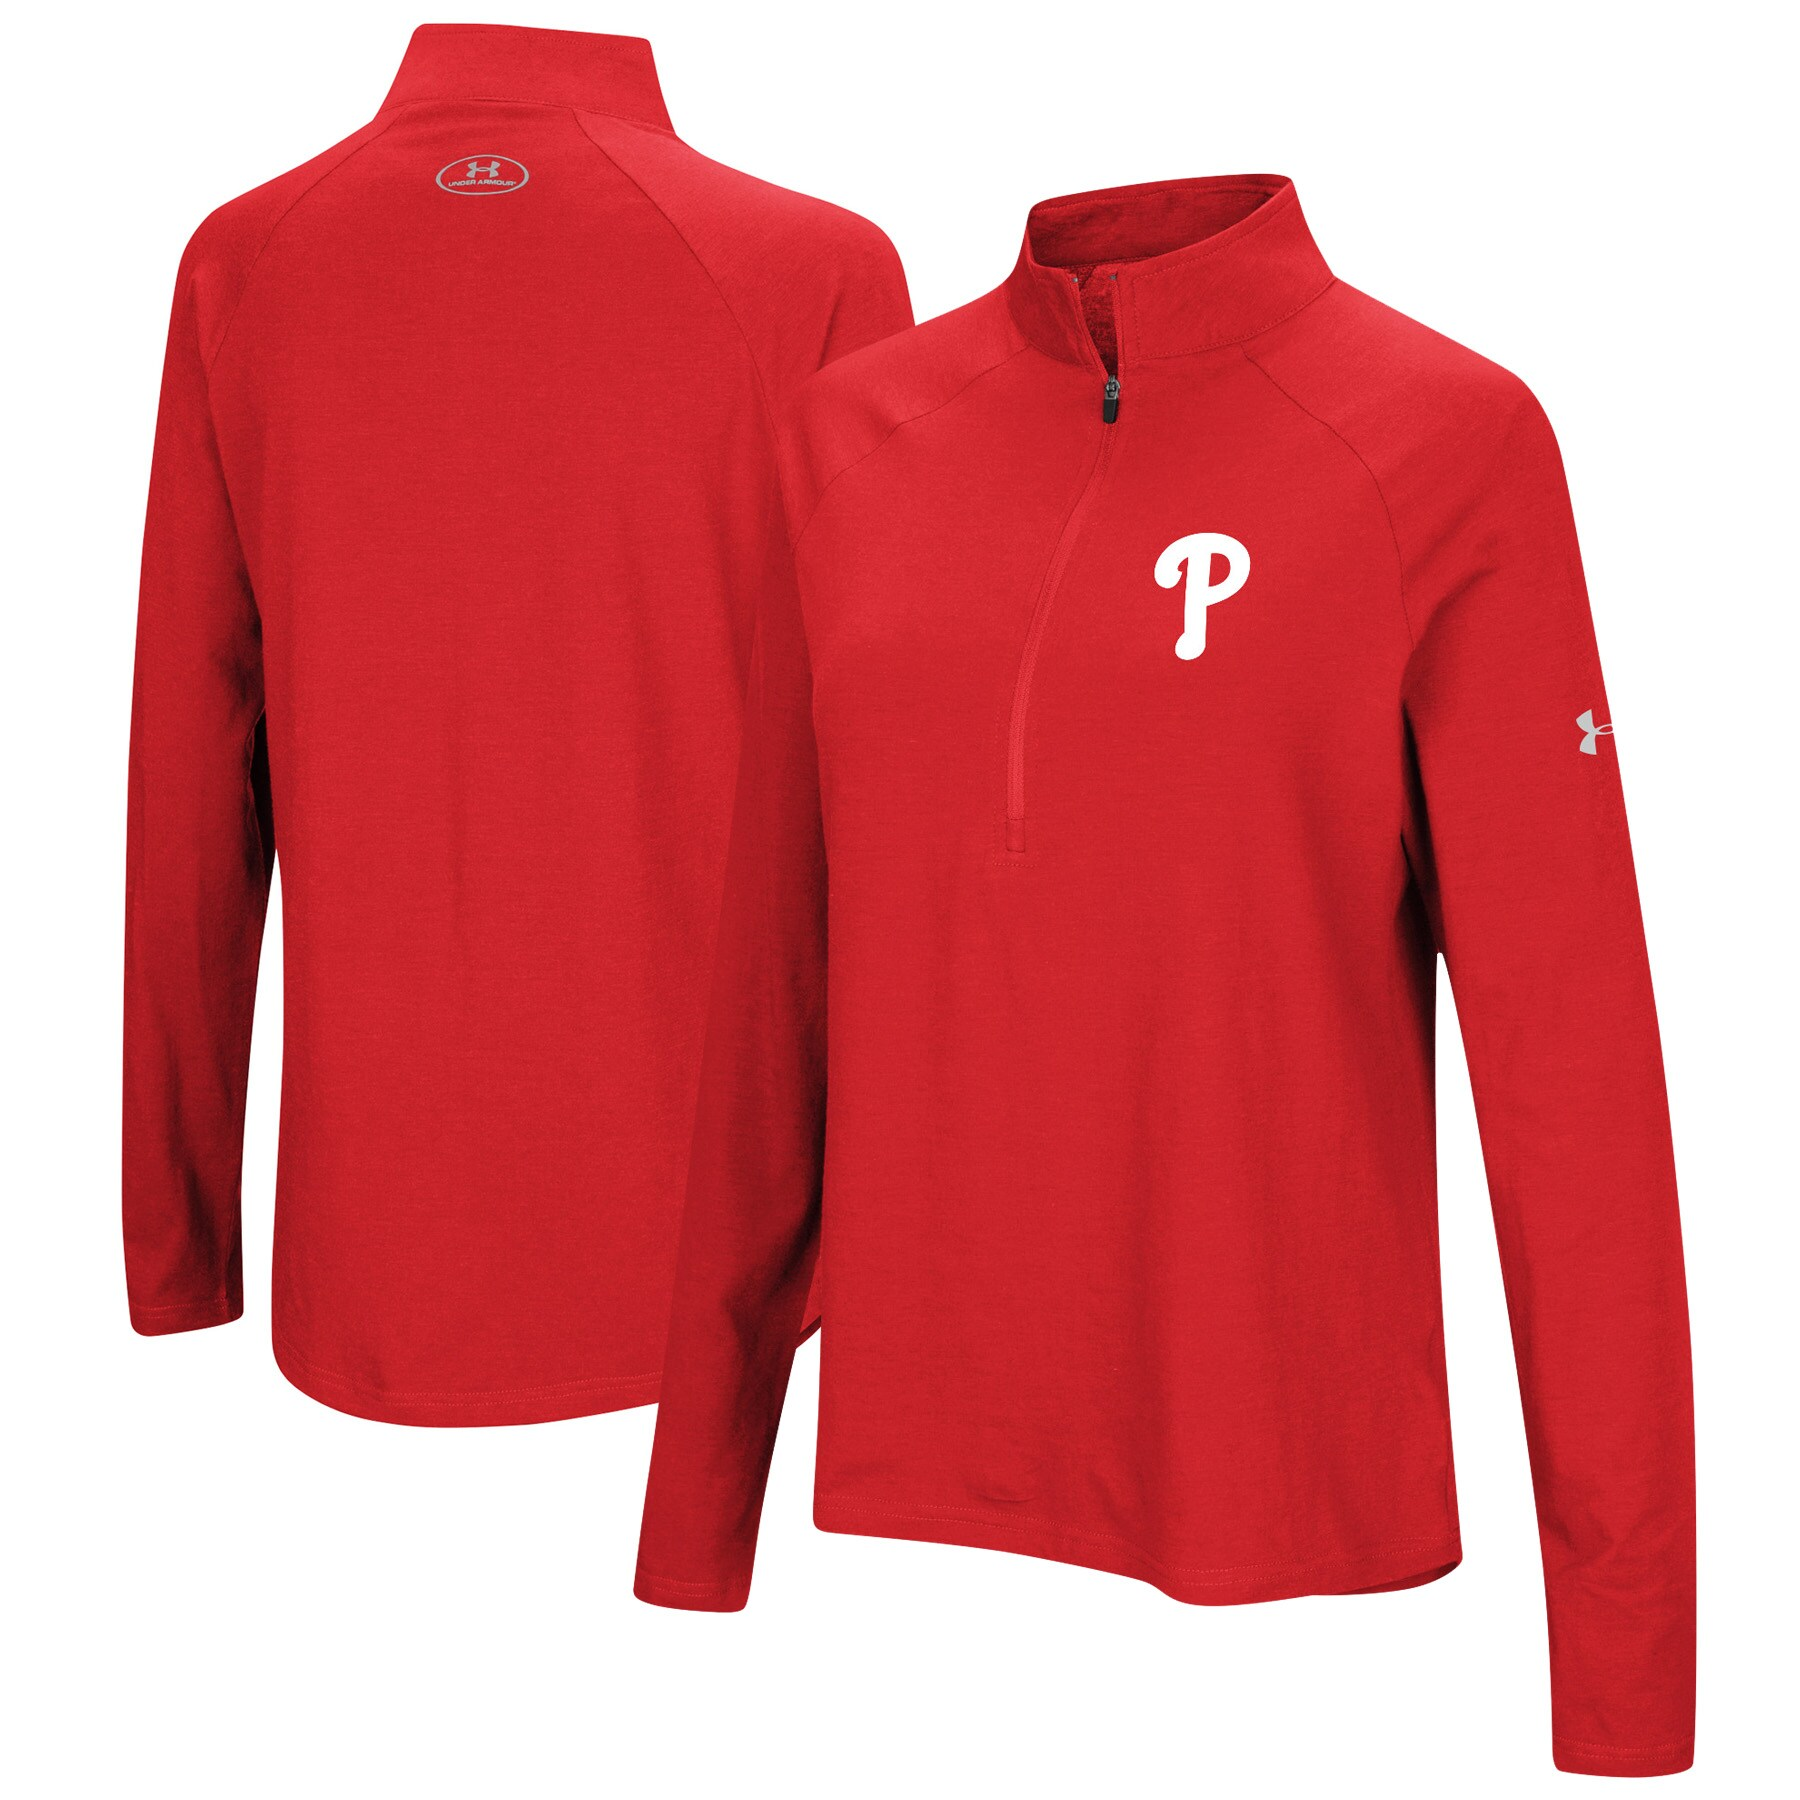 Philadelphia Phillies Under Armour Women's Passion Performance Tri-Blend Raglan Half-Zip Pullover Jacket - Red